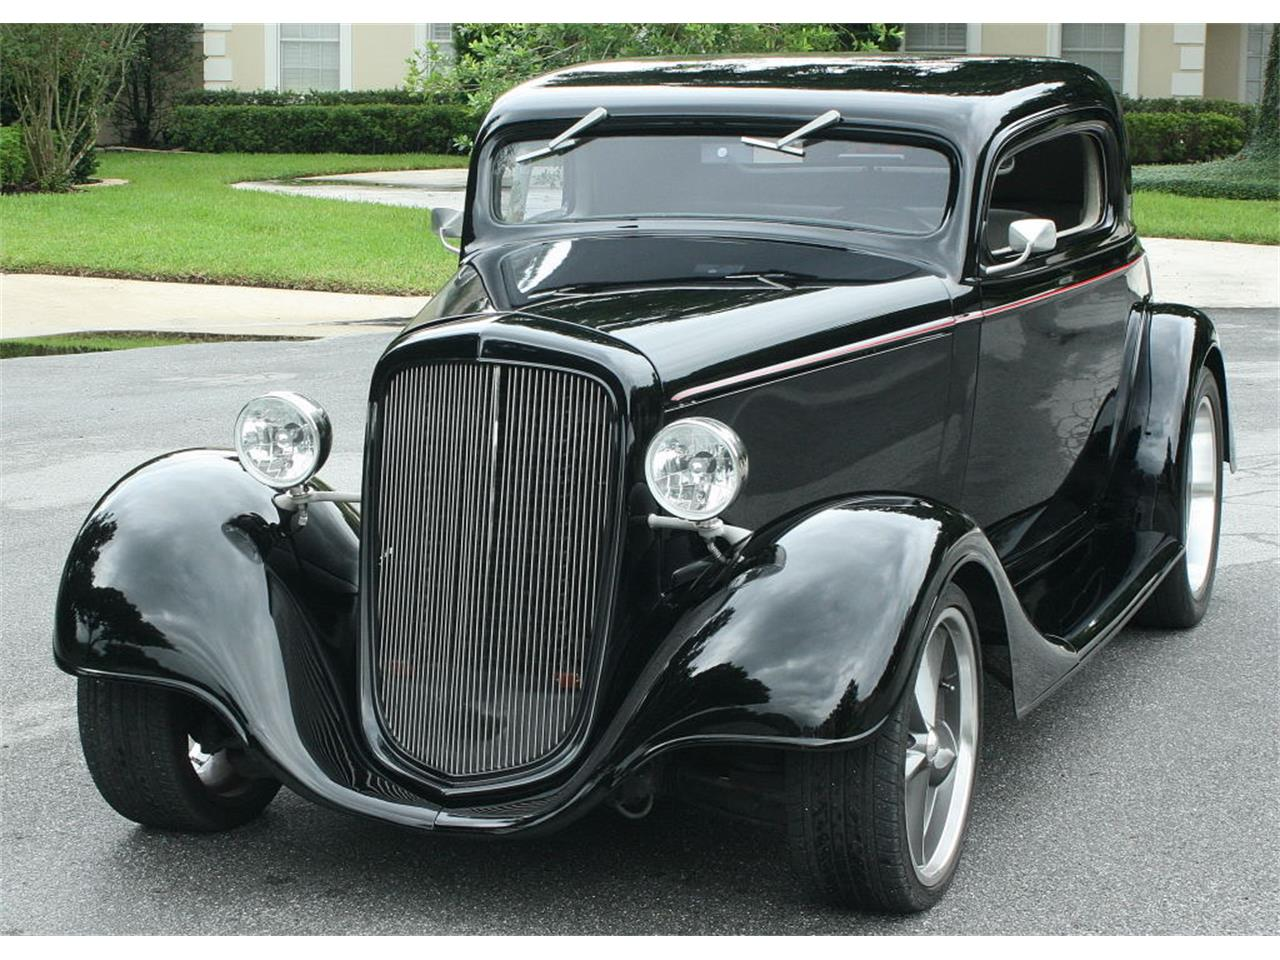 Large Picture of Classic '34 Chevrolet Hot Rod located in Florida - $39,500.00 - PH4O